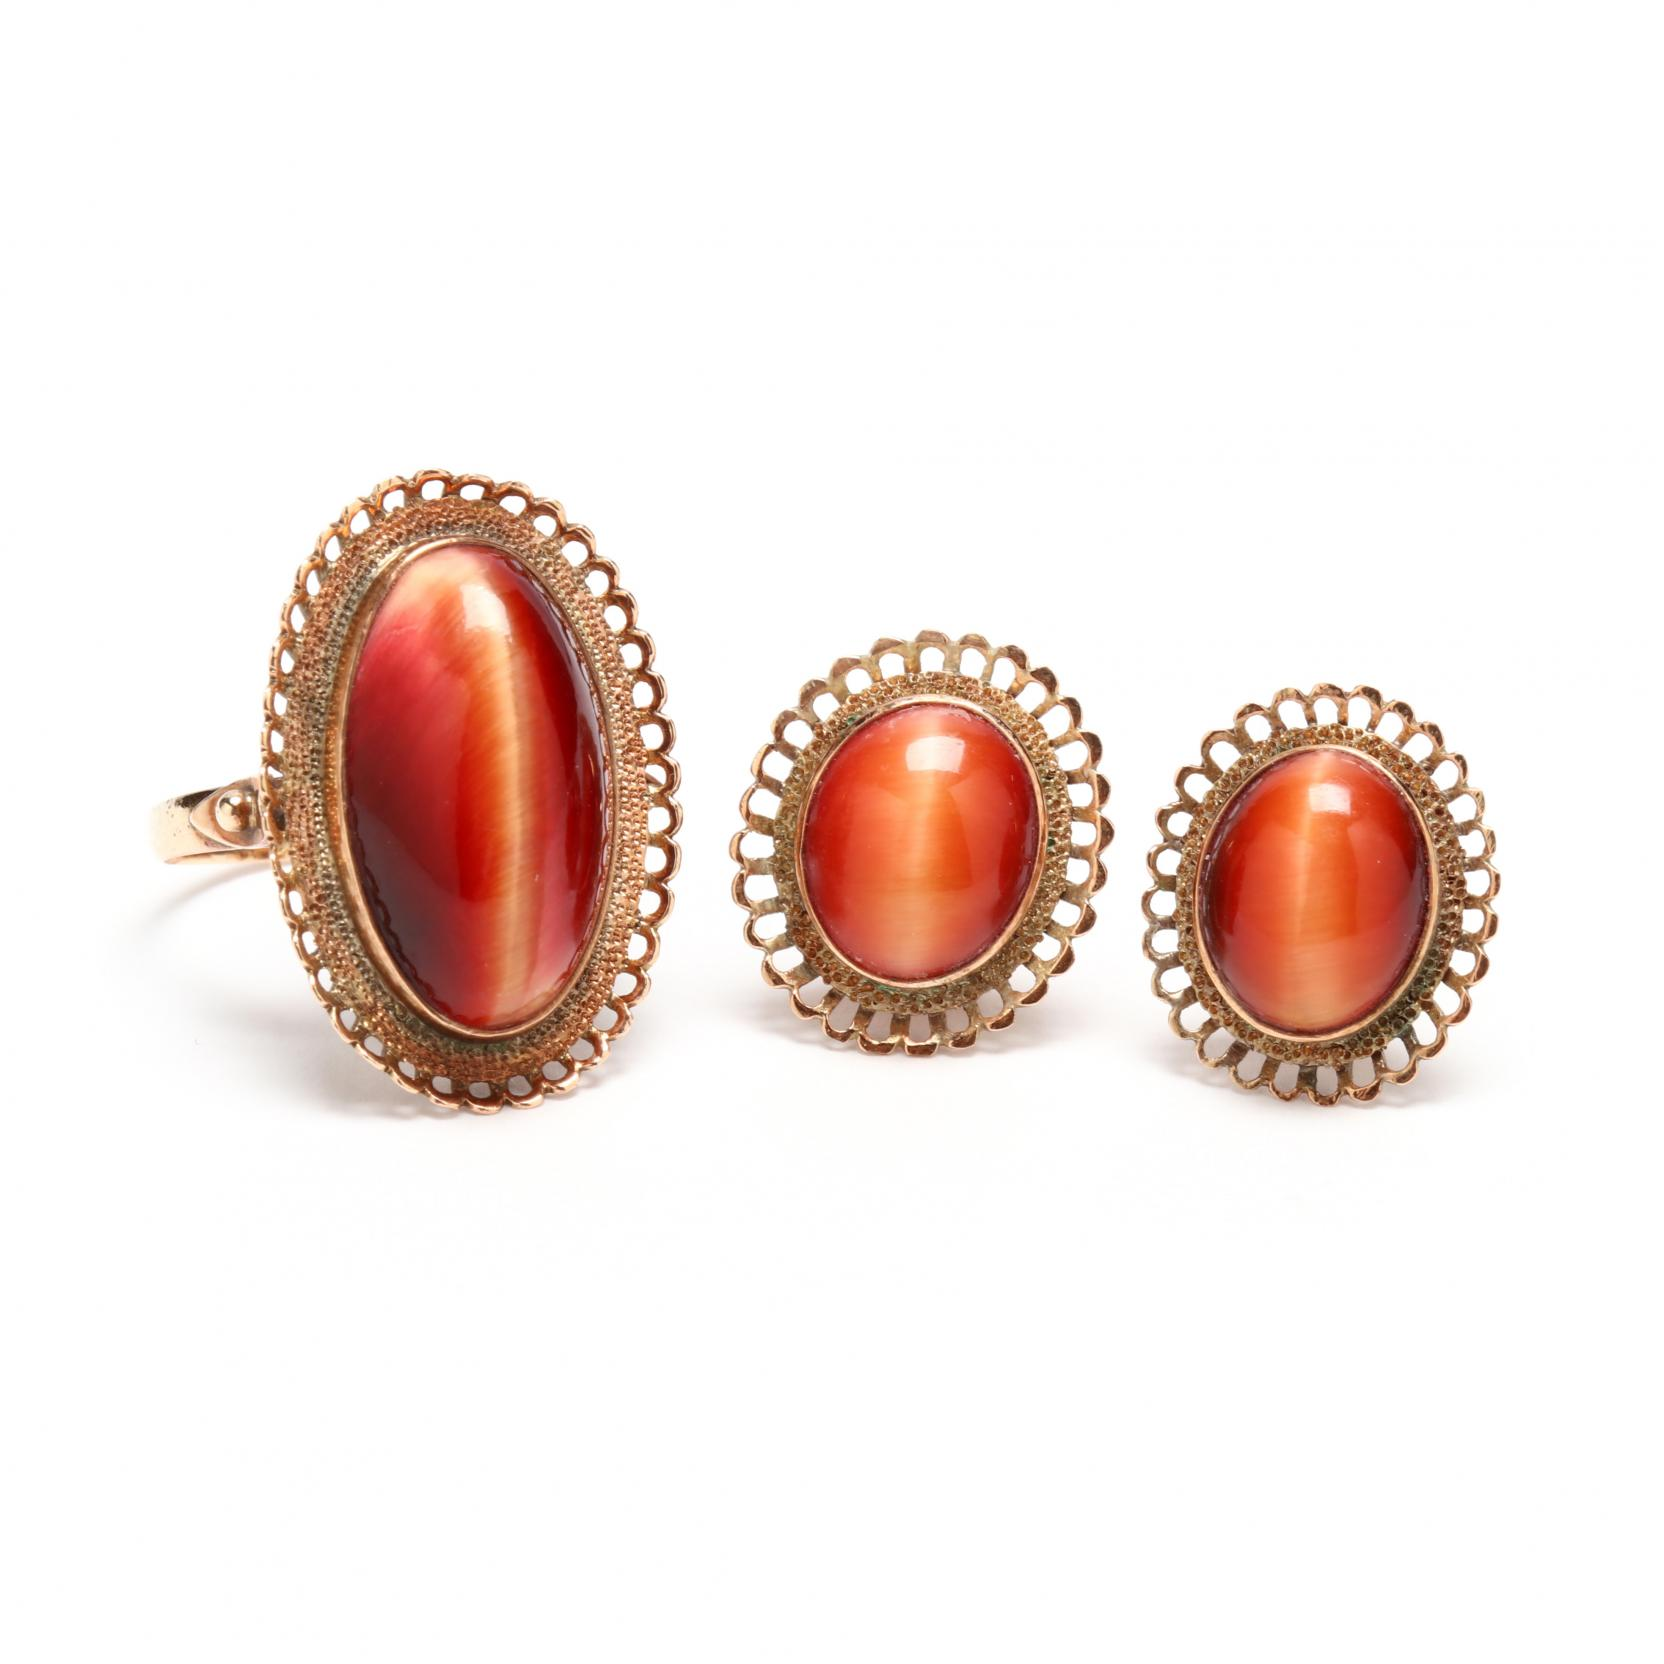 18kt-gold-and-chatoyant-agate-earrings-and-ring